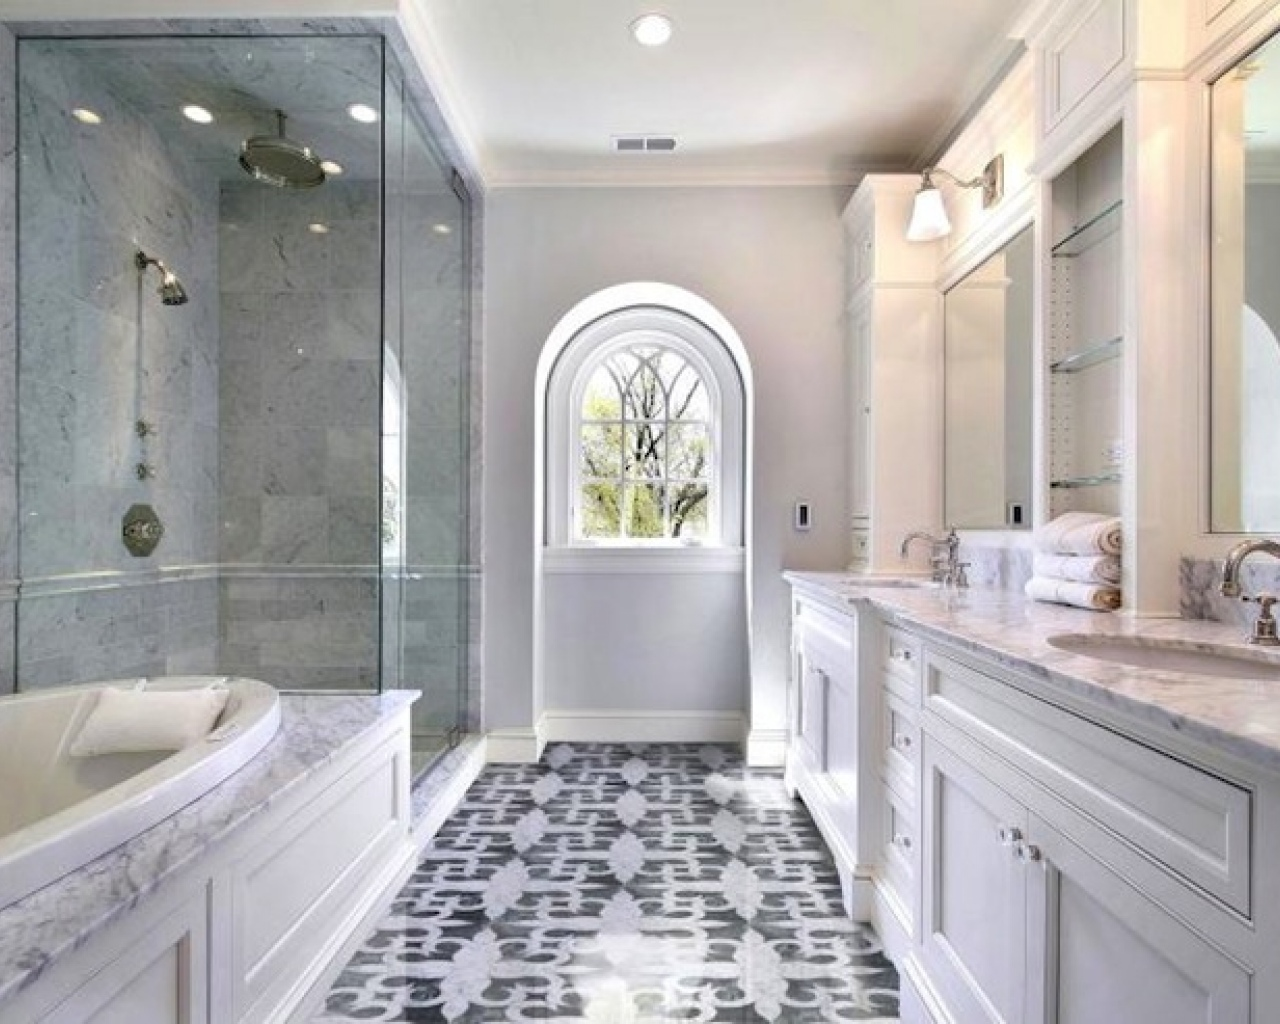 25 amazing italian bathroom tile designs ideas and pictures Images of bathroom tile floors